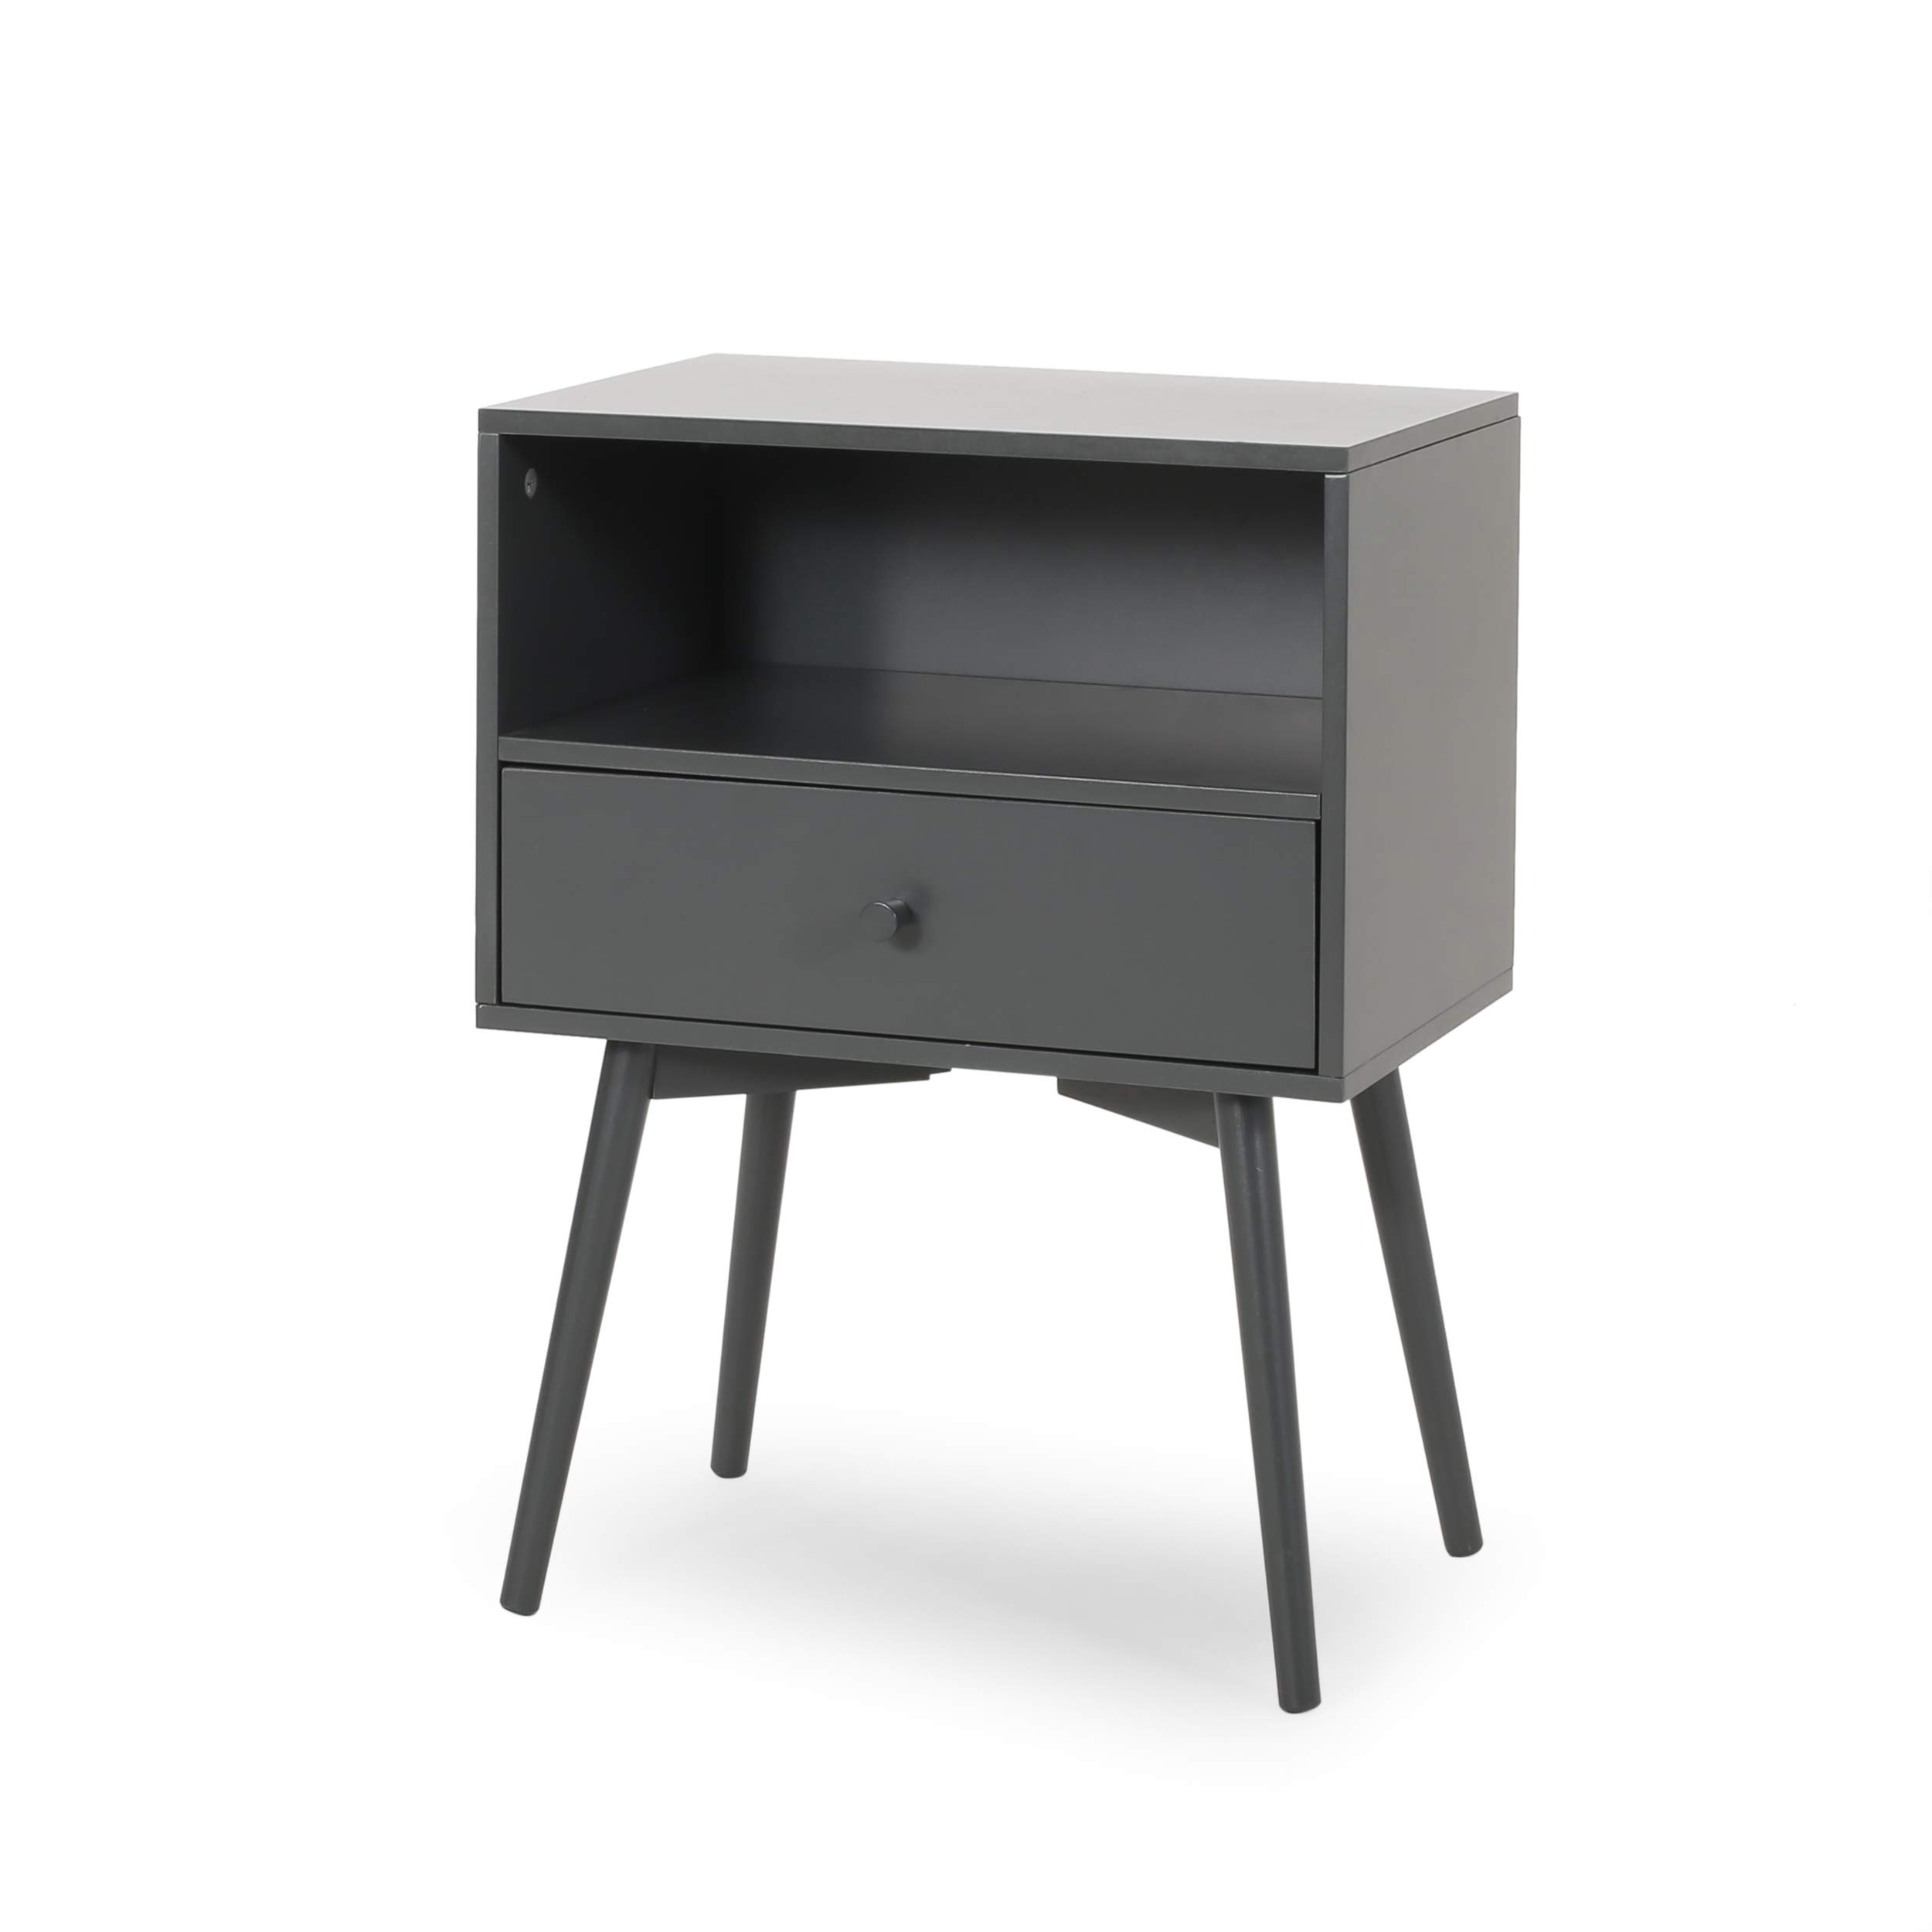 Alexis Mid-Century Modern Side Table, Dark Gray by Great Deal Furniture